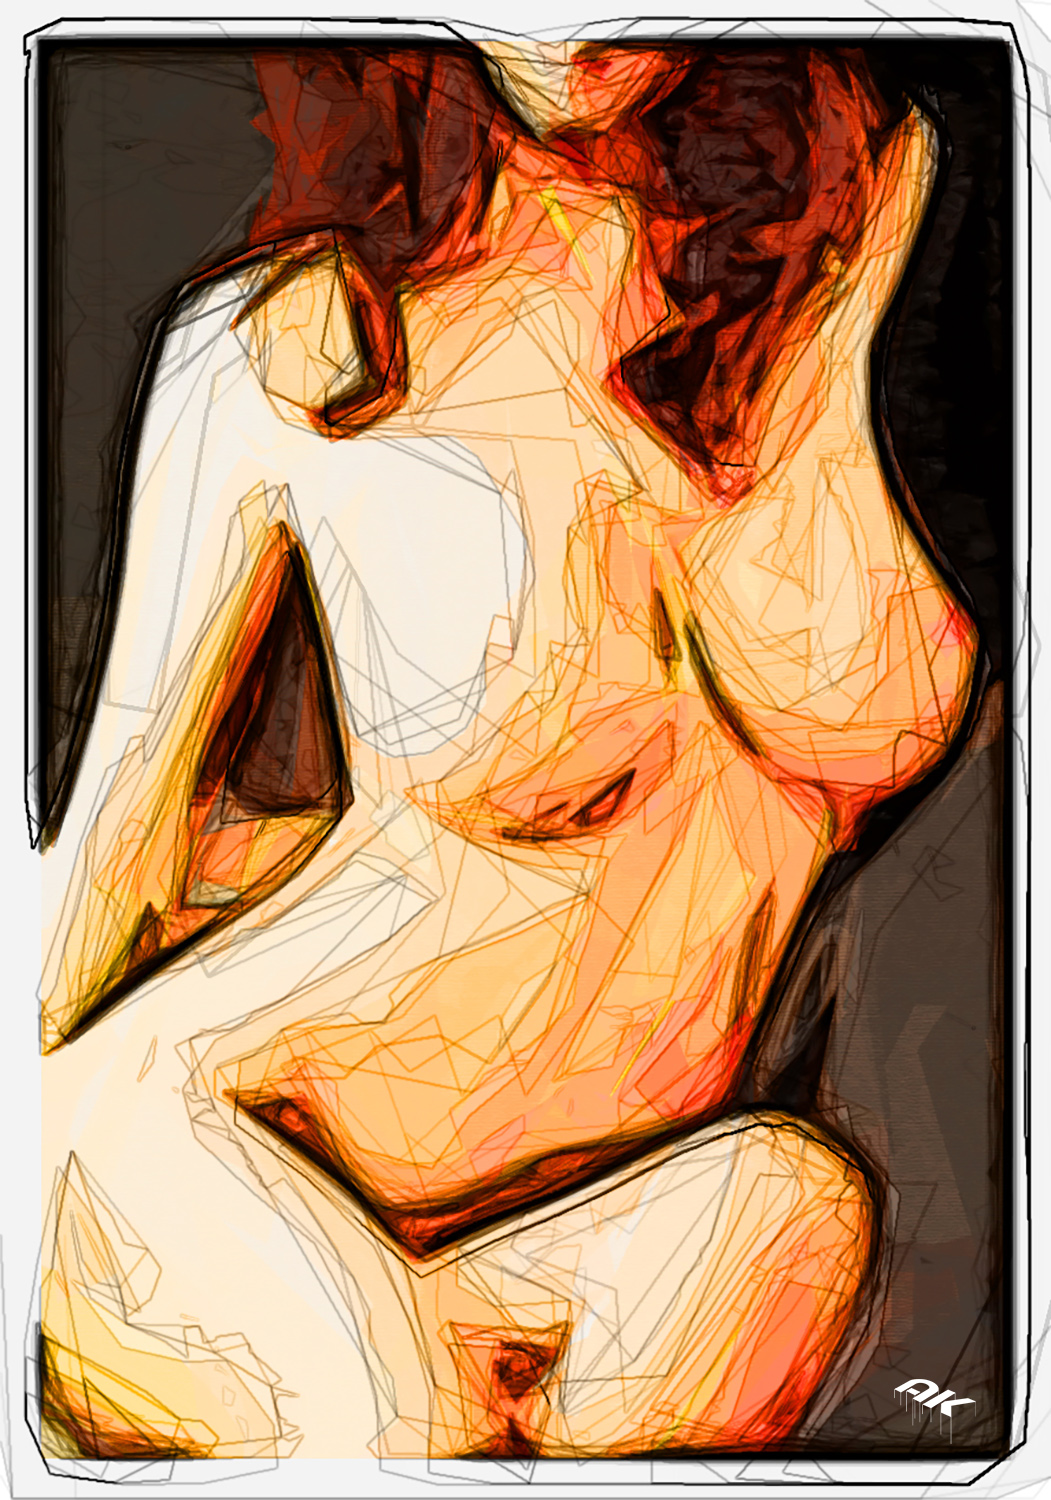 life-drawing-series-6-image-7-copyright-andrew-knutt